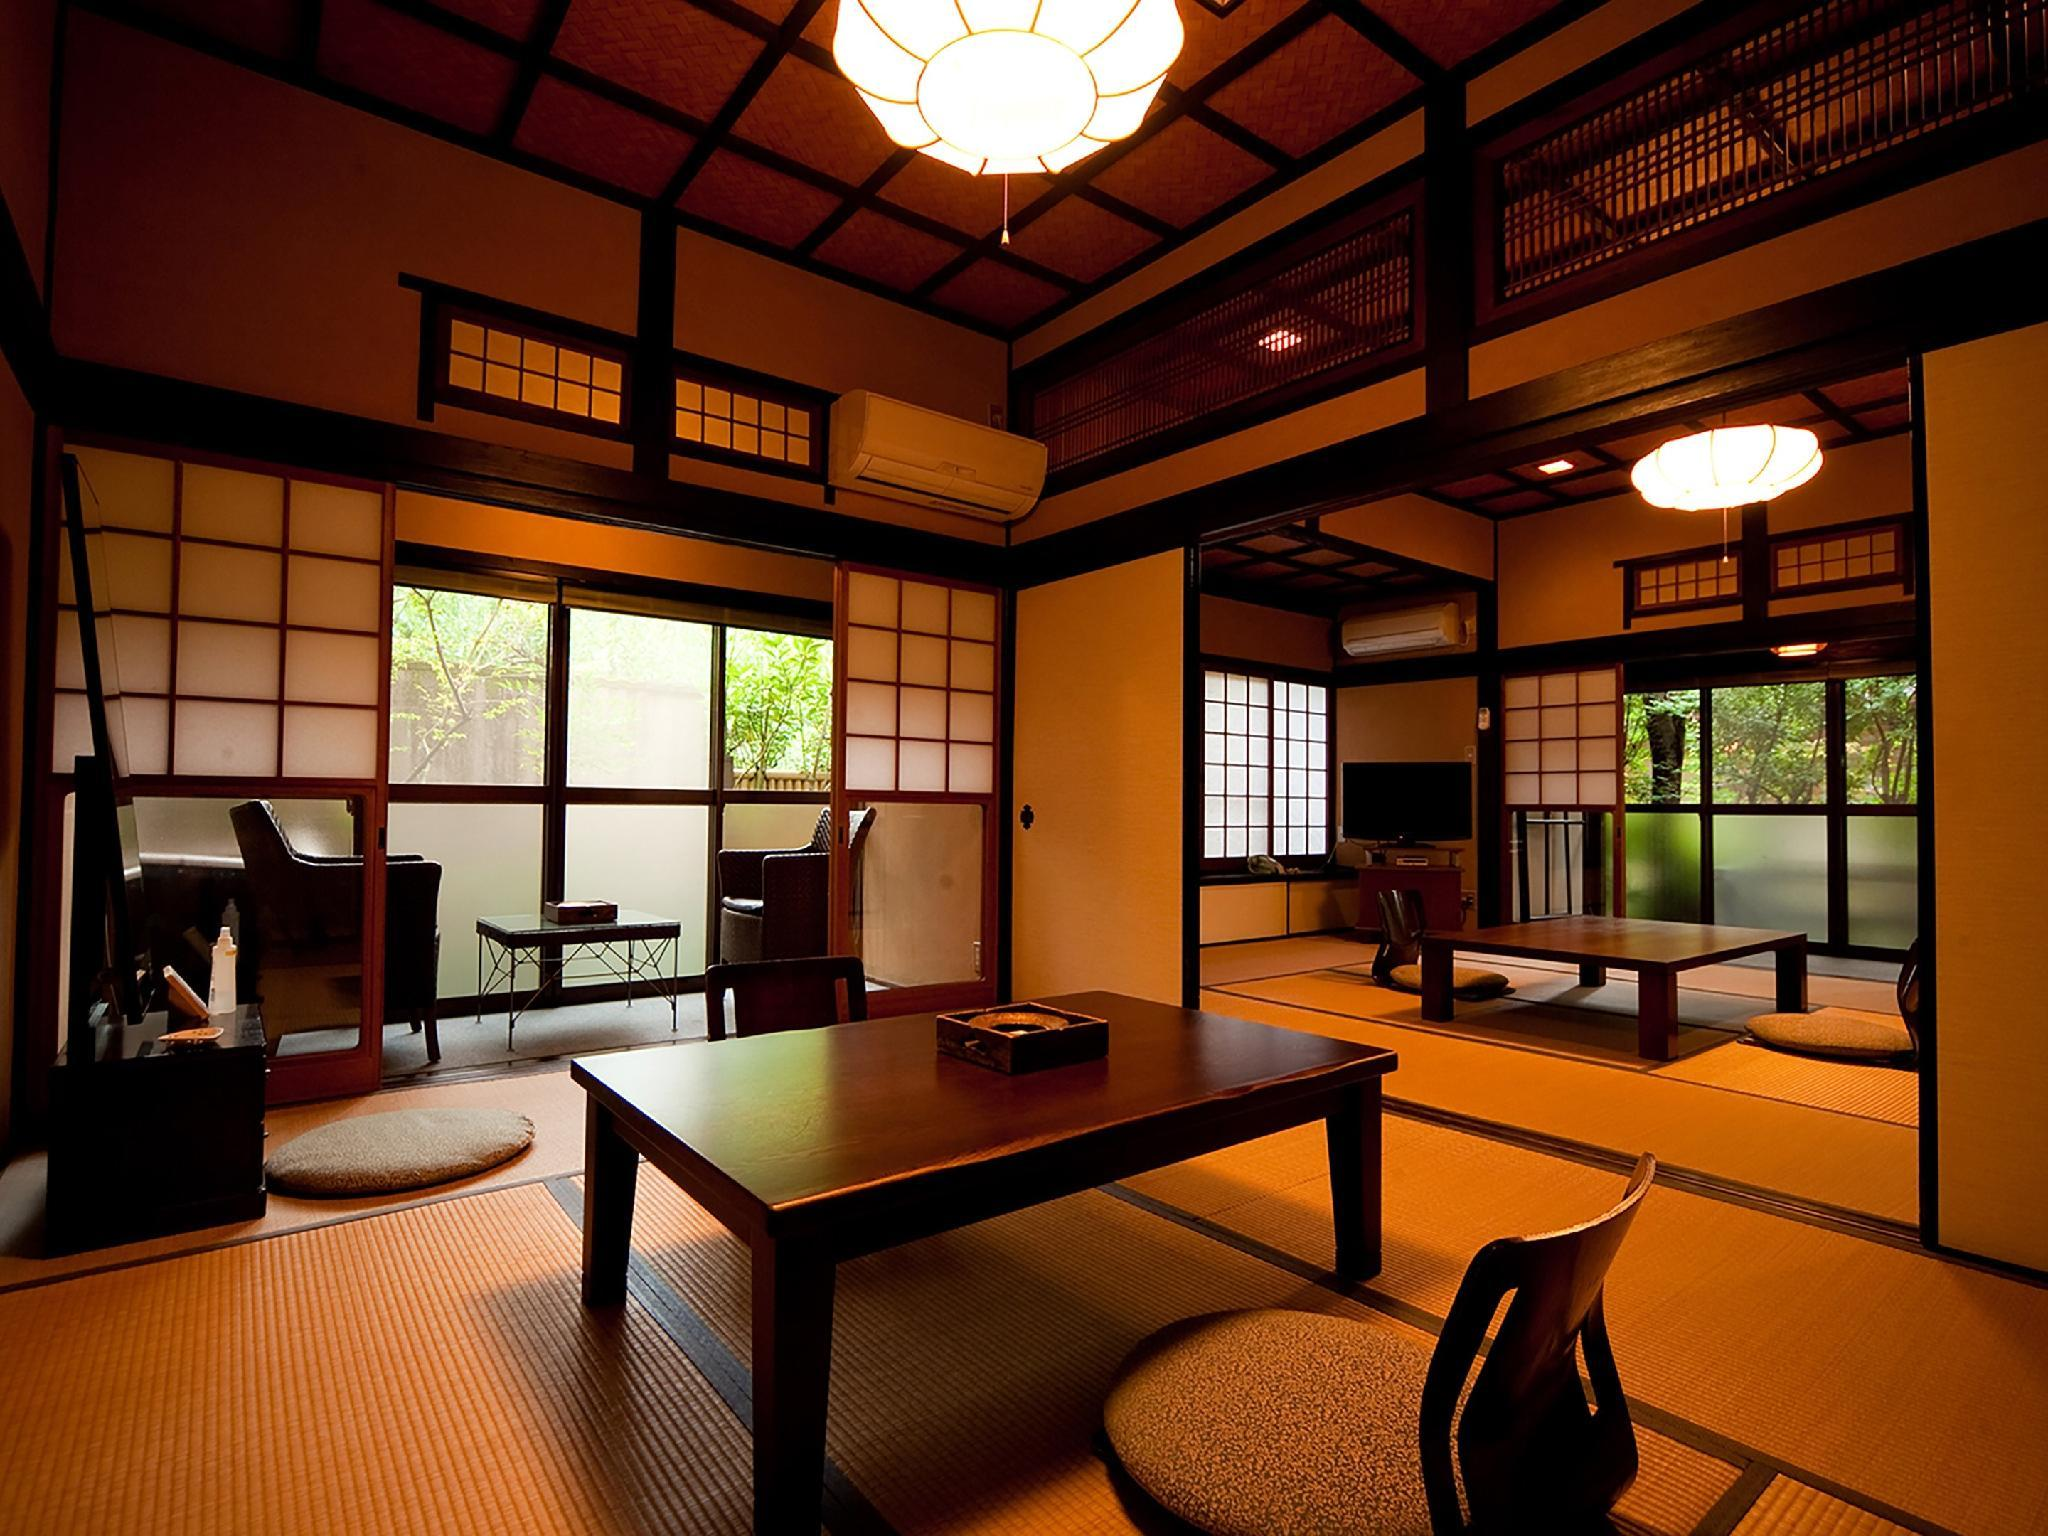 다다미 객실(노천탕) *실내탕 없음 (Japanese-style Room with Open-air Bath *No bath in room)